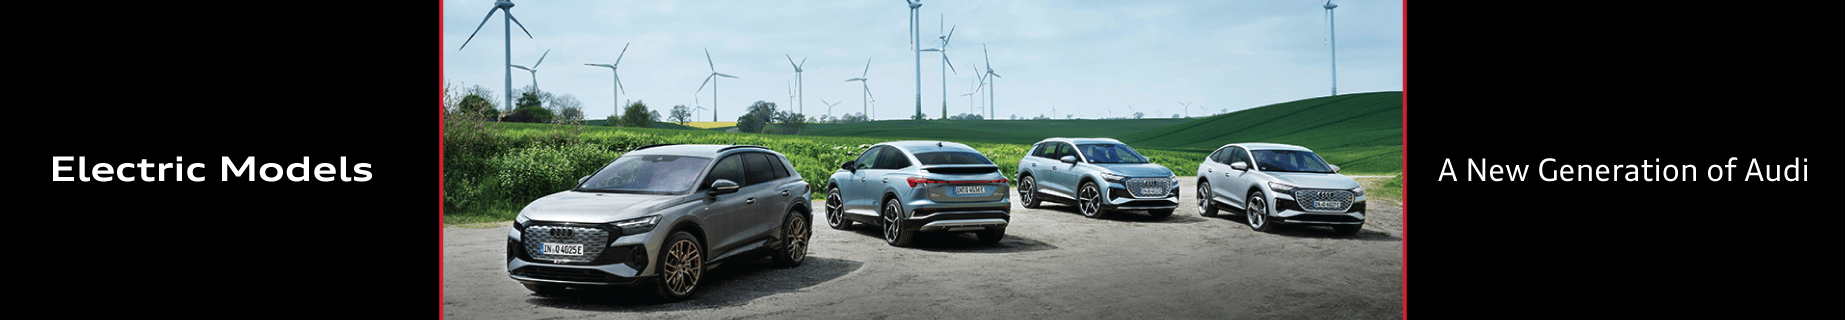 Electric Vehicle Leadership Most Models of any Luxury Brand